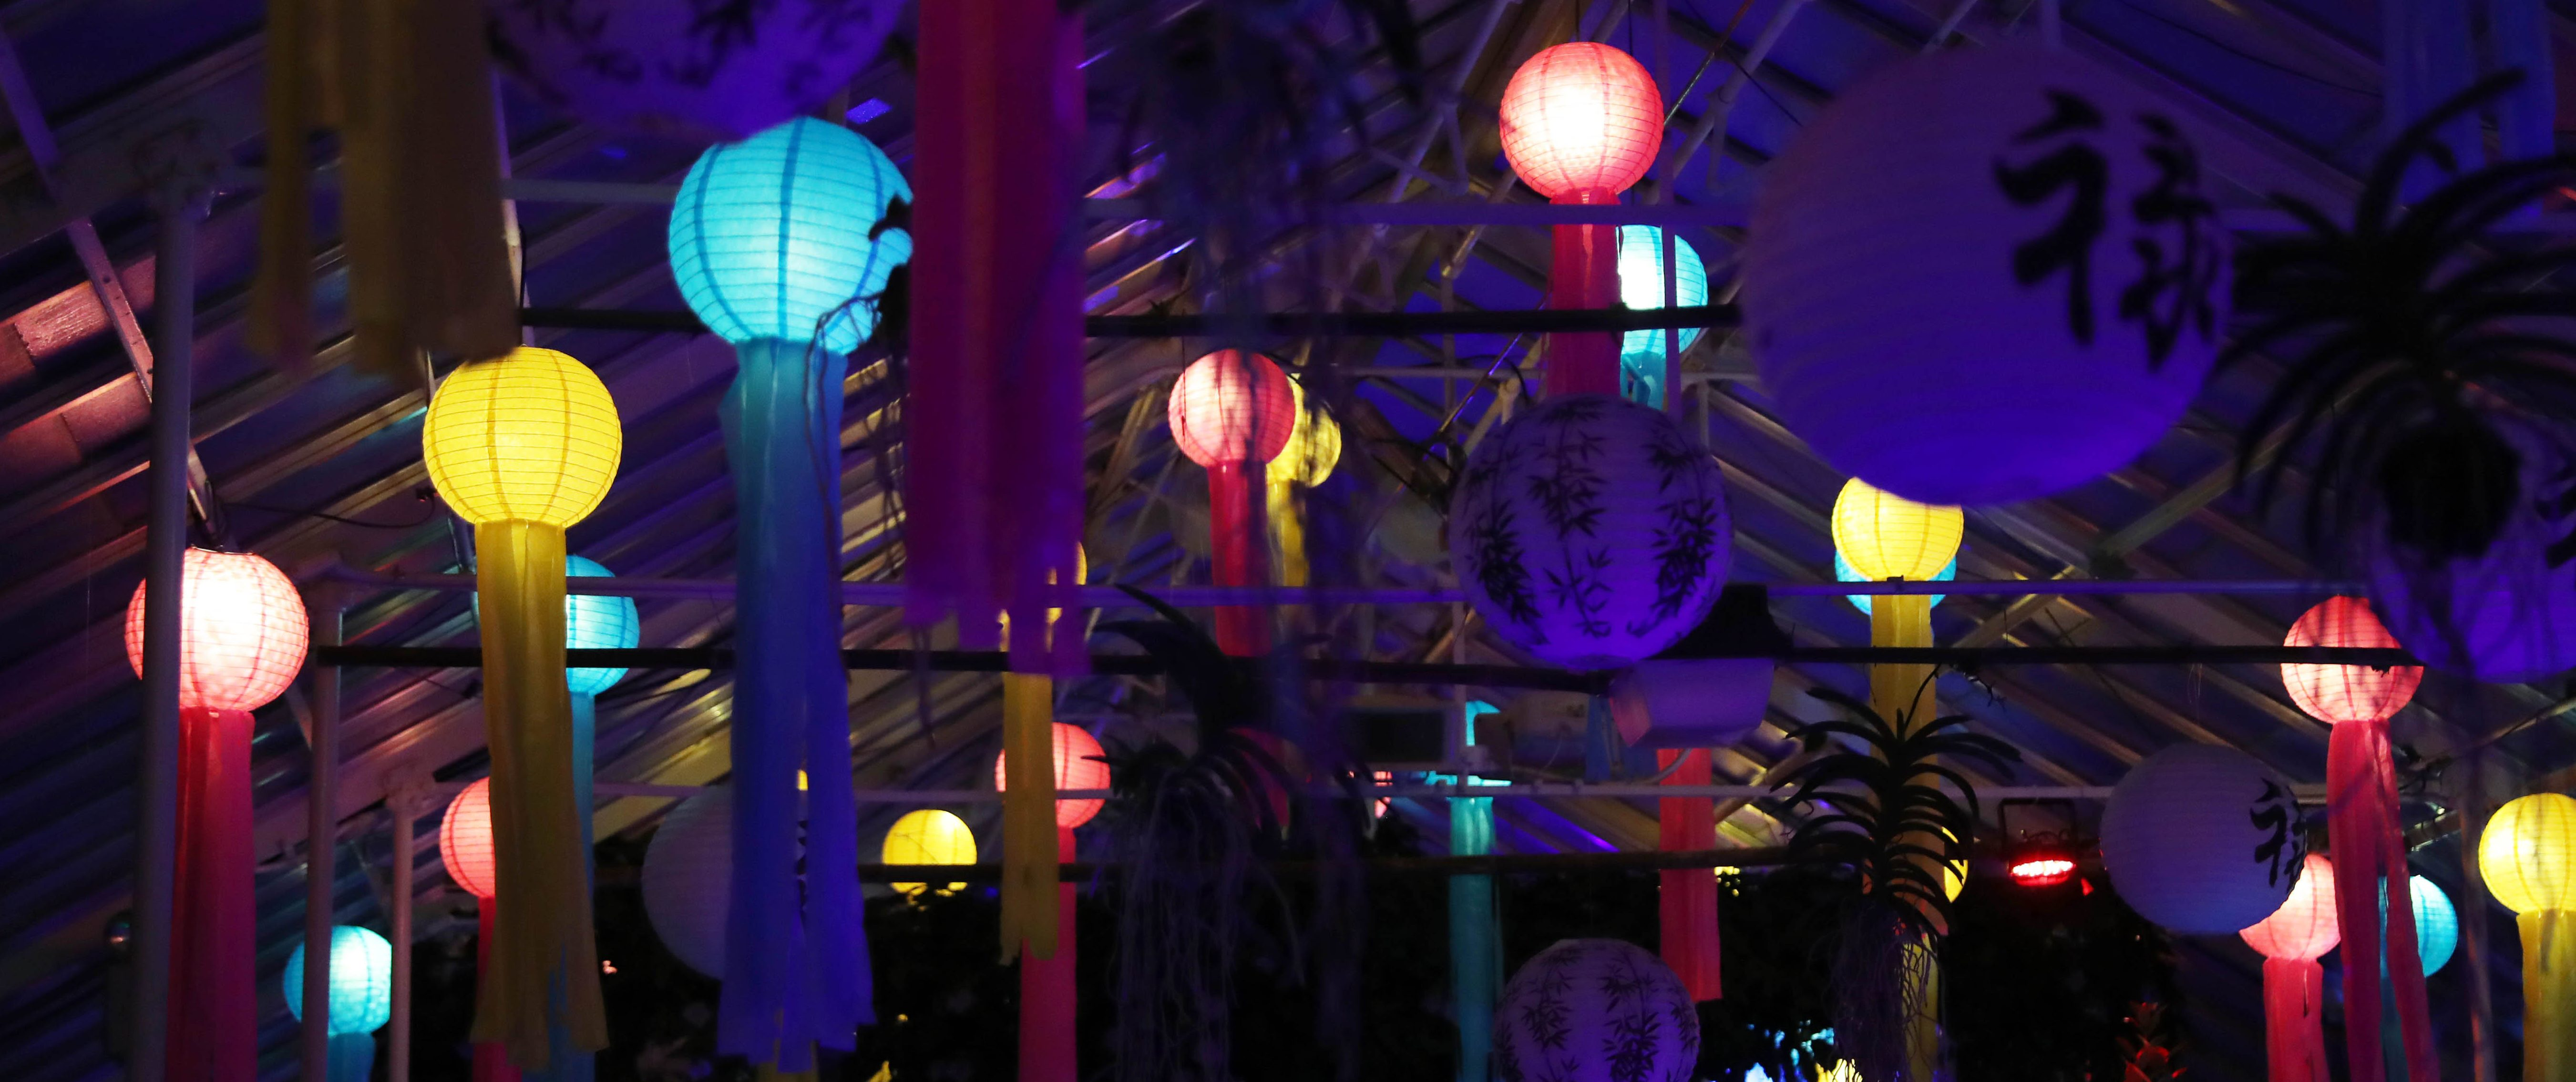 Lumagination at the Botanical Gardens is just one way to enjoy Valentine's Day without being generic. (Sharon Cantillon/Buffalo News)